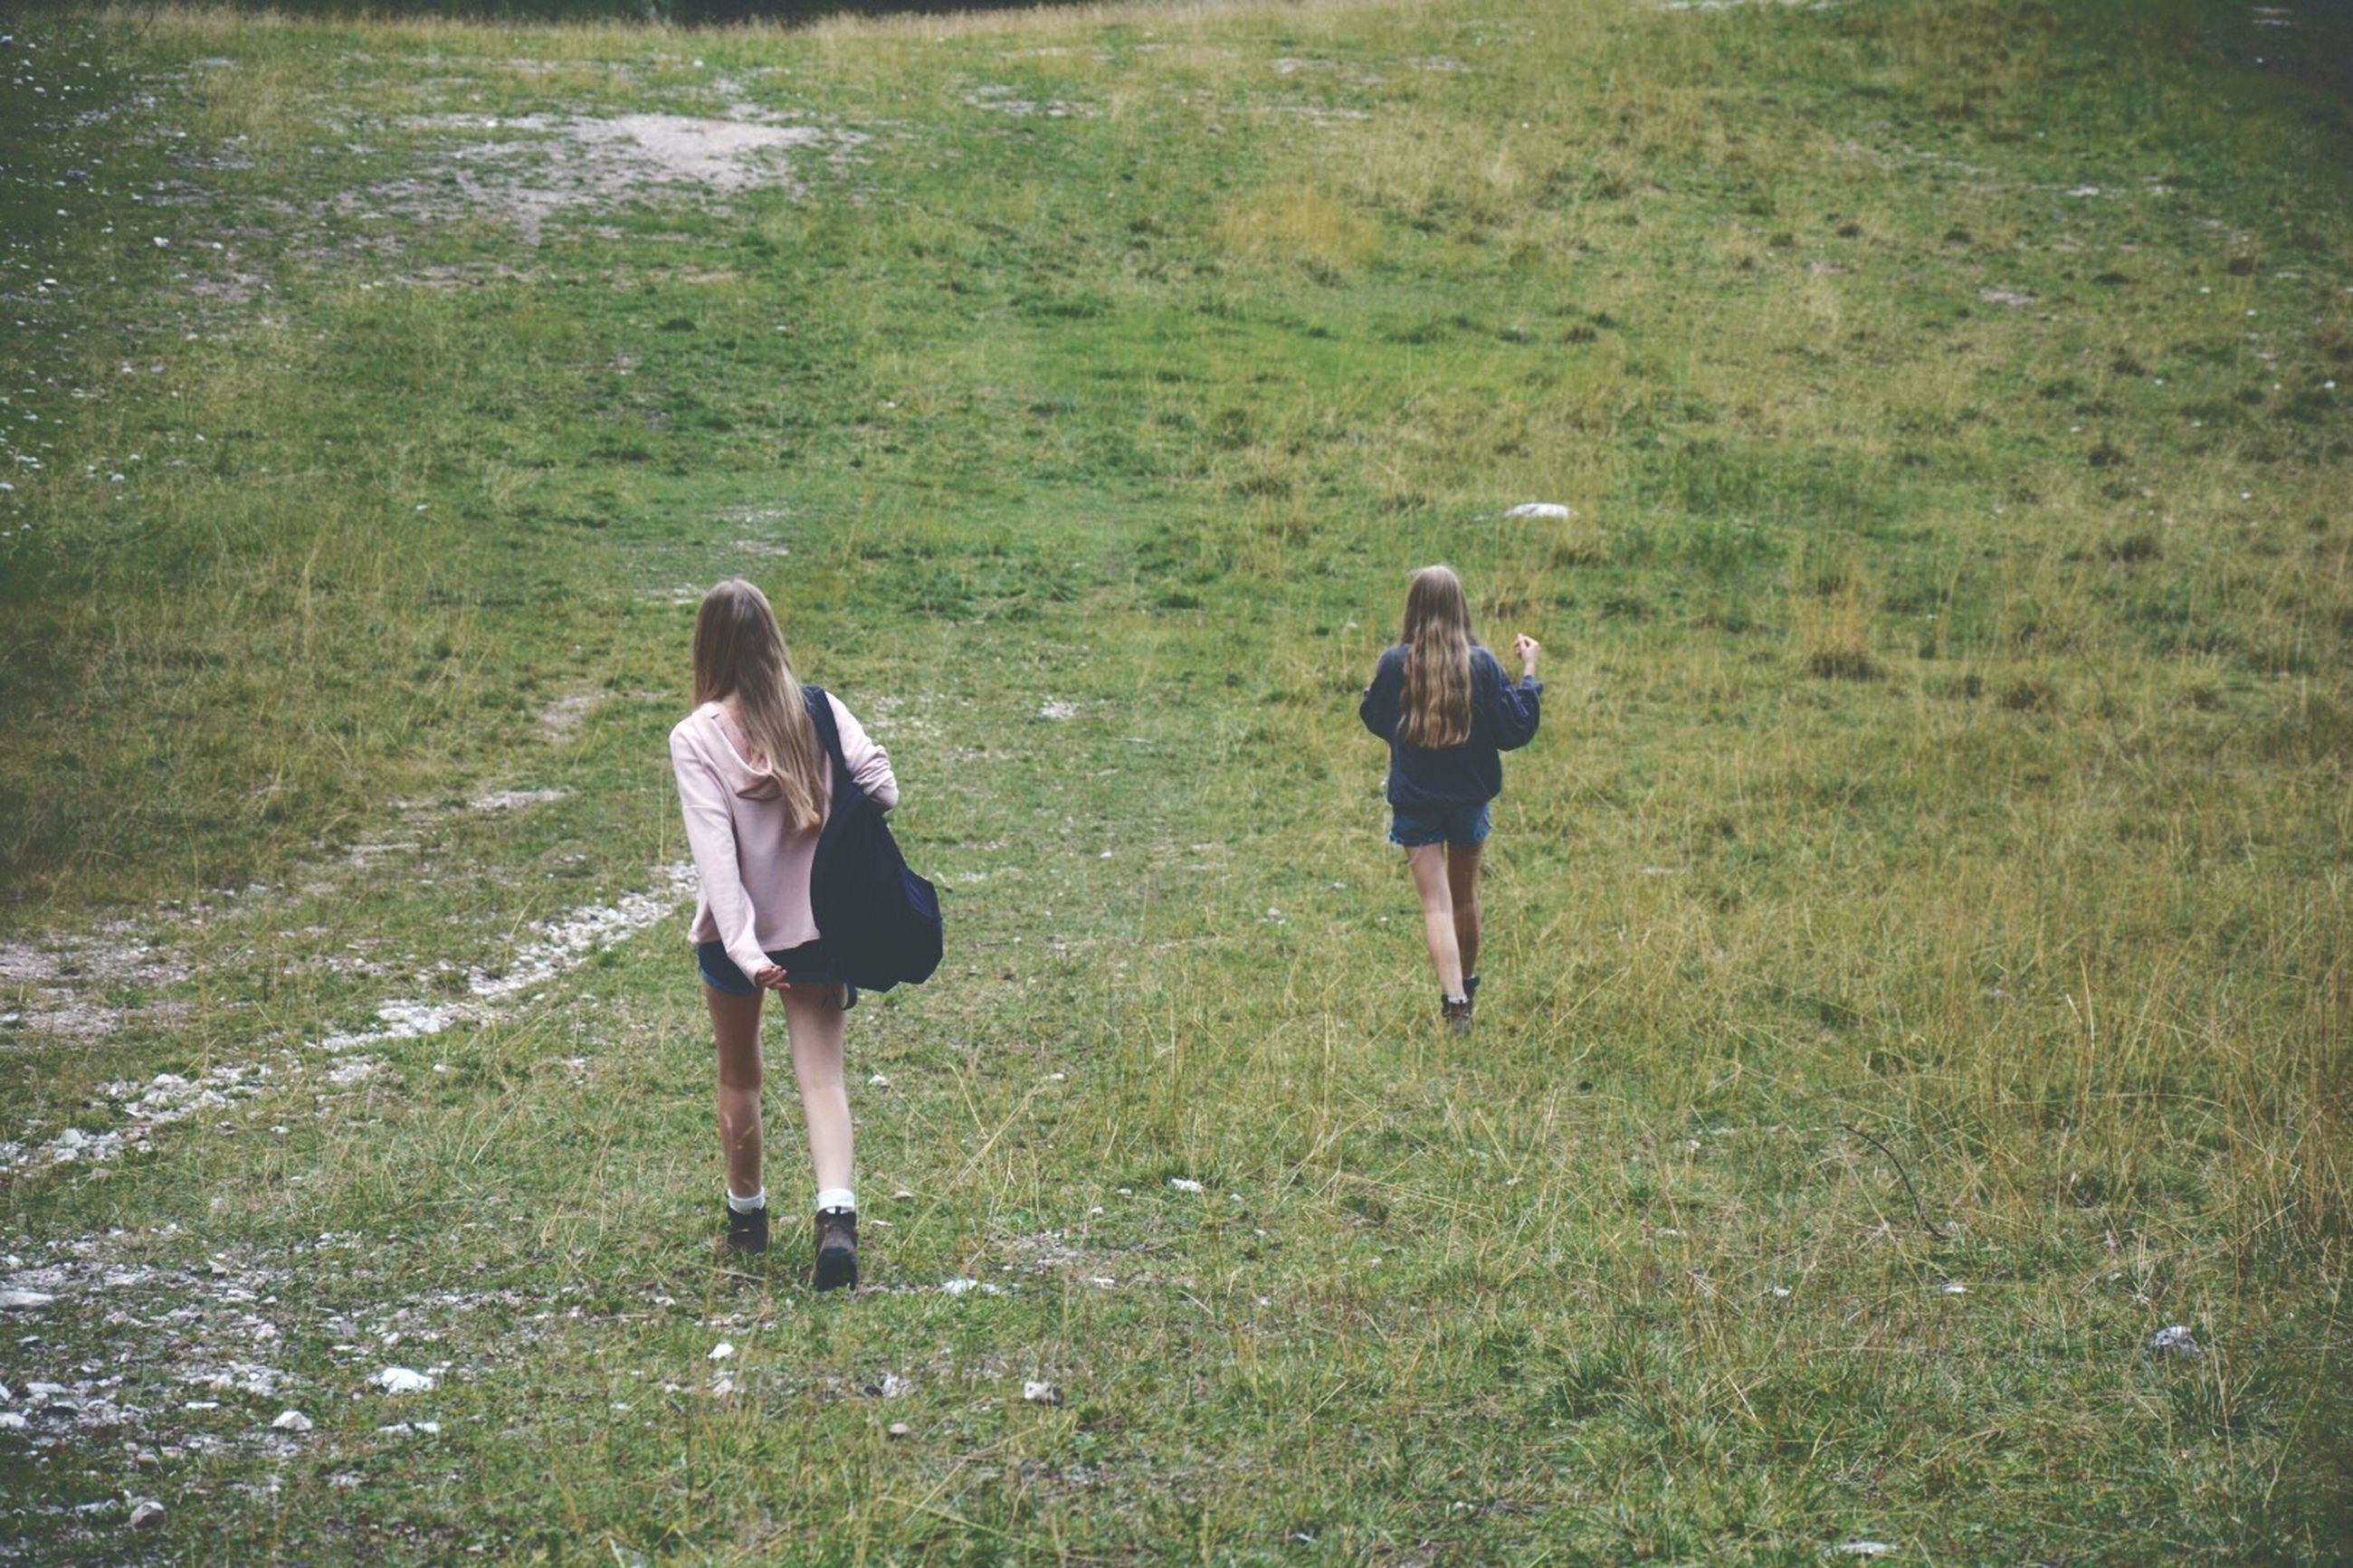 grass, landscape, walking, rear view, field, two people, standing, real people, full length, hiking, togetherness, nature, friendship, outdoors, day, people, adult